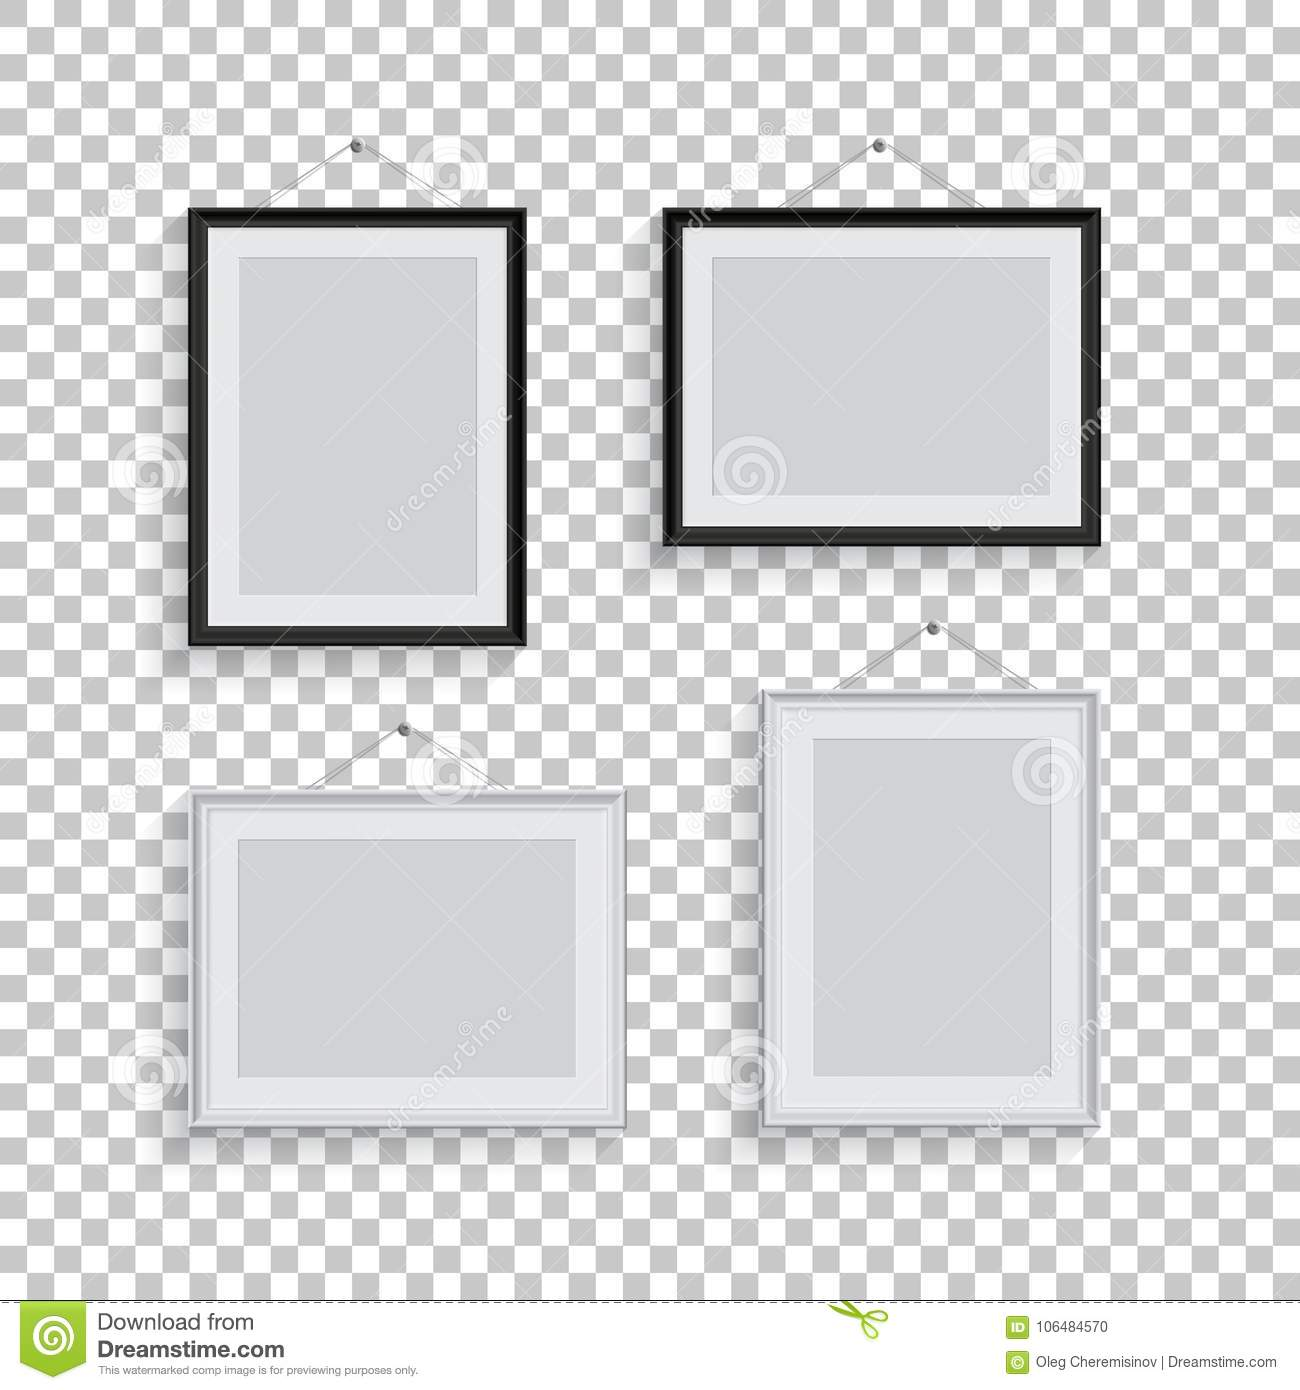 White And Black Picture Or Photo Frames In Different Positions